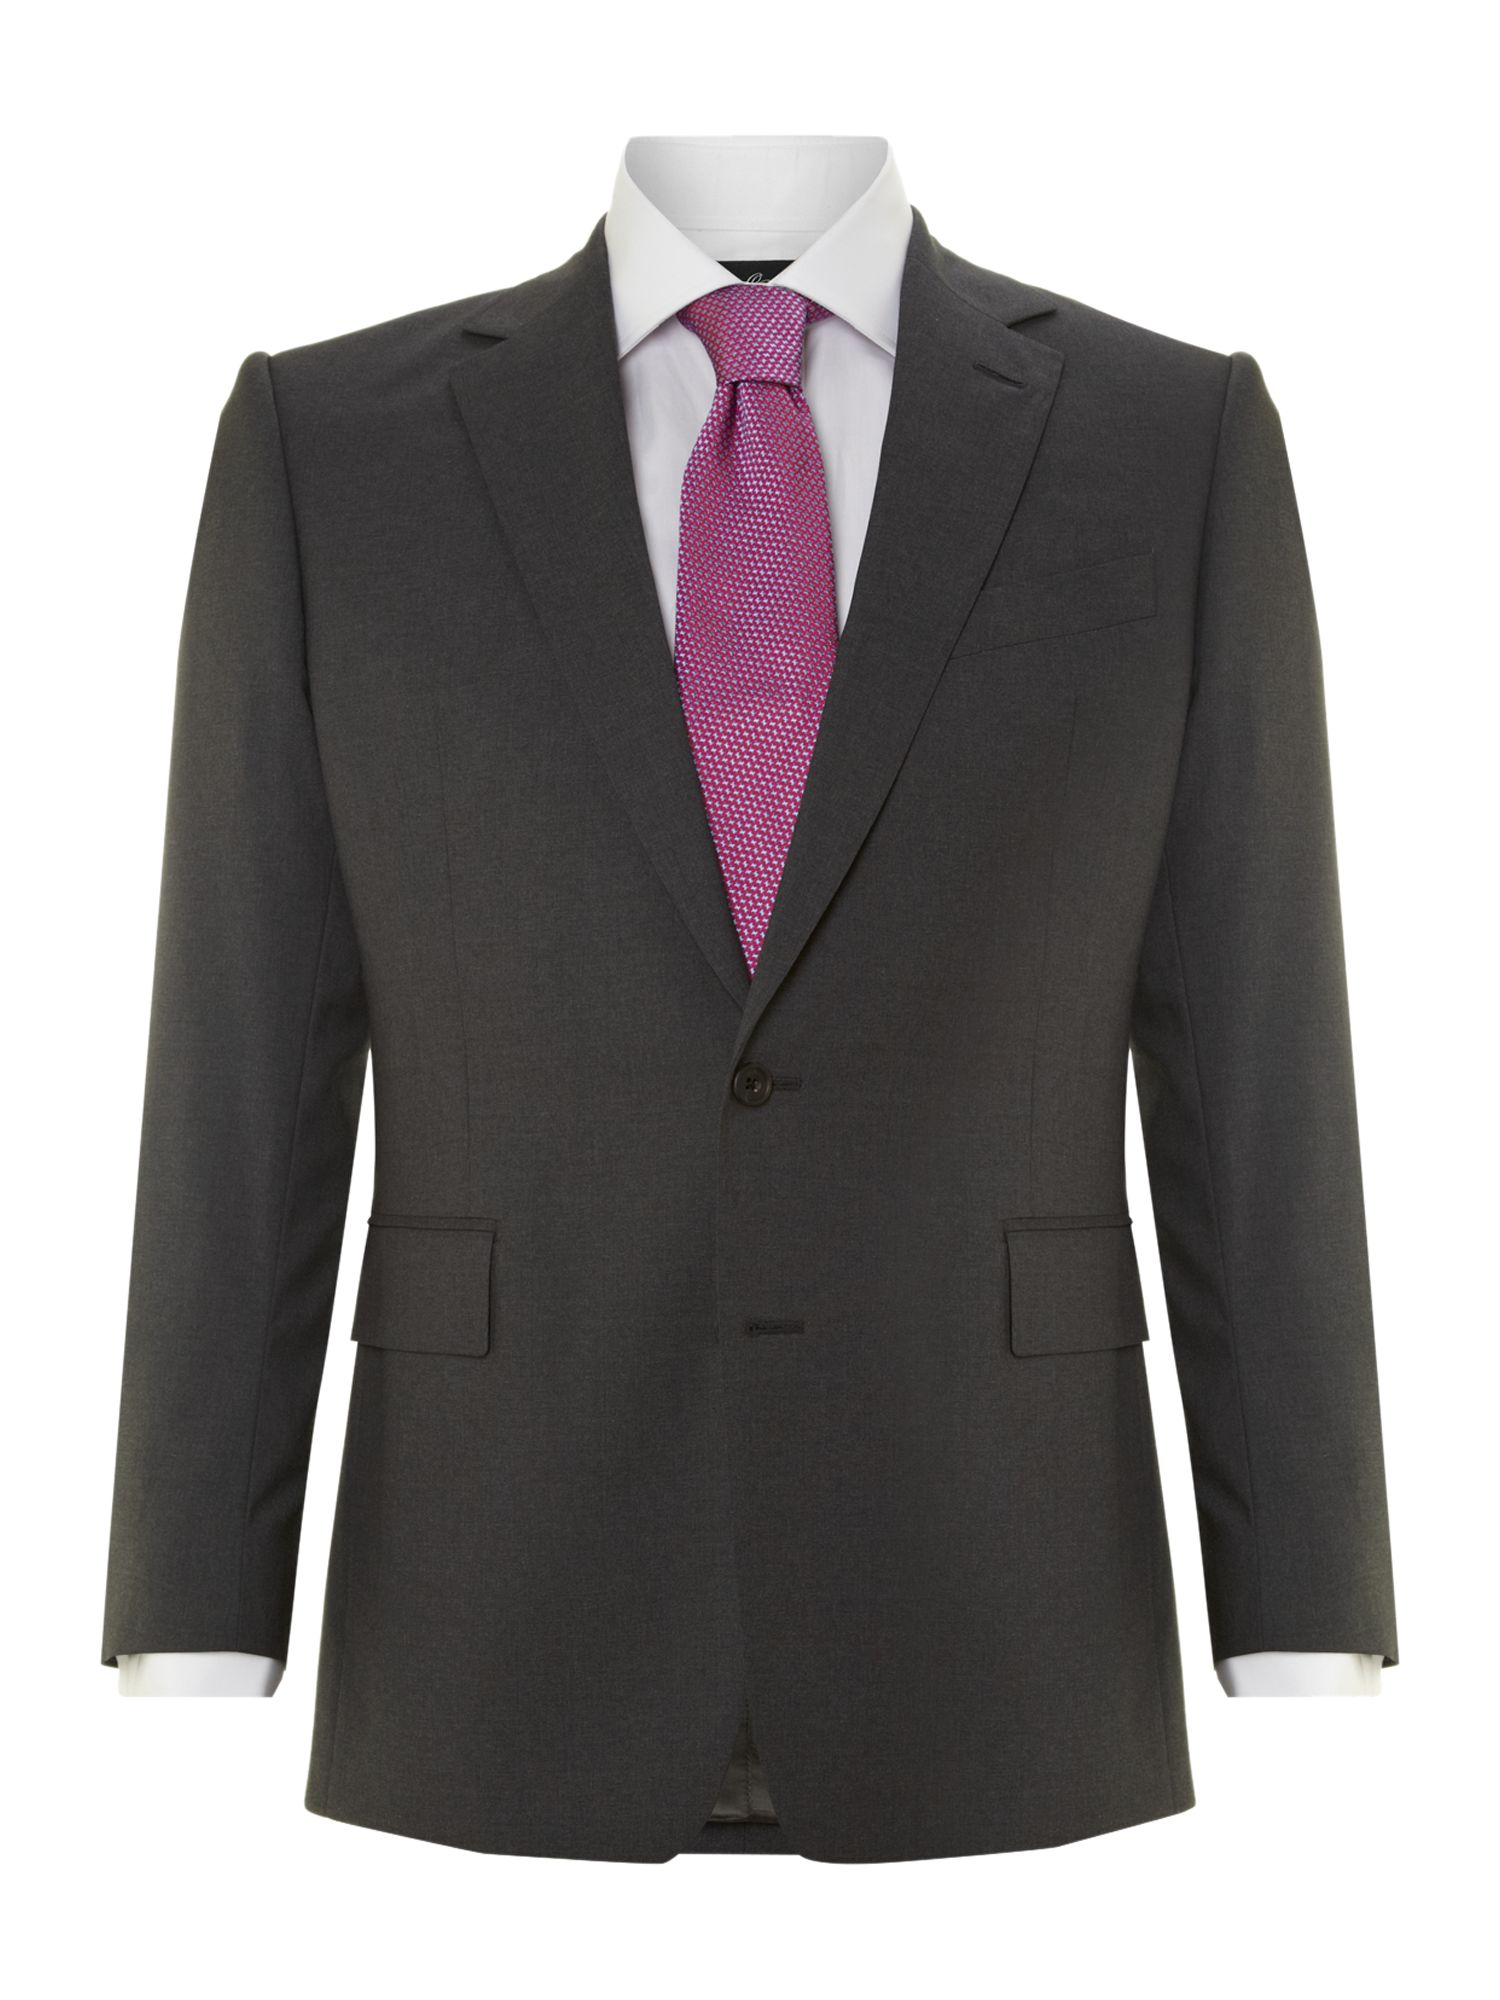 Plain contemporary suit